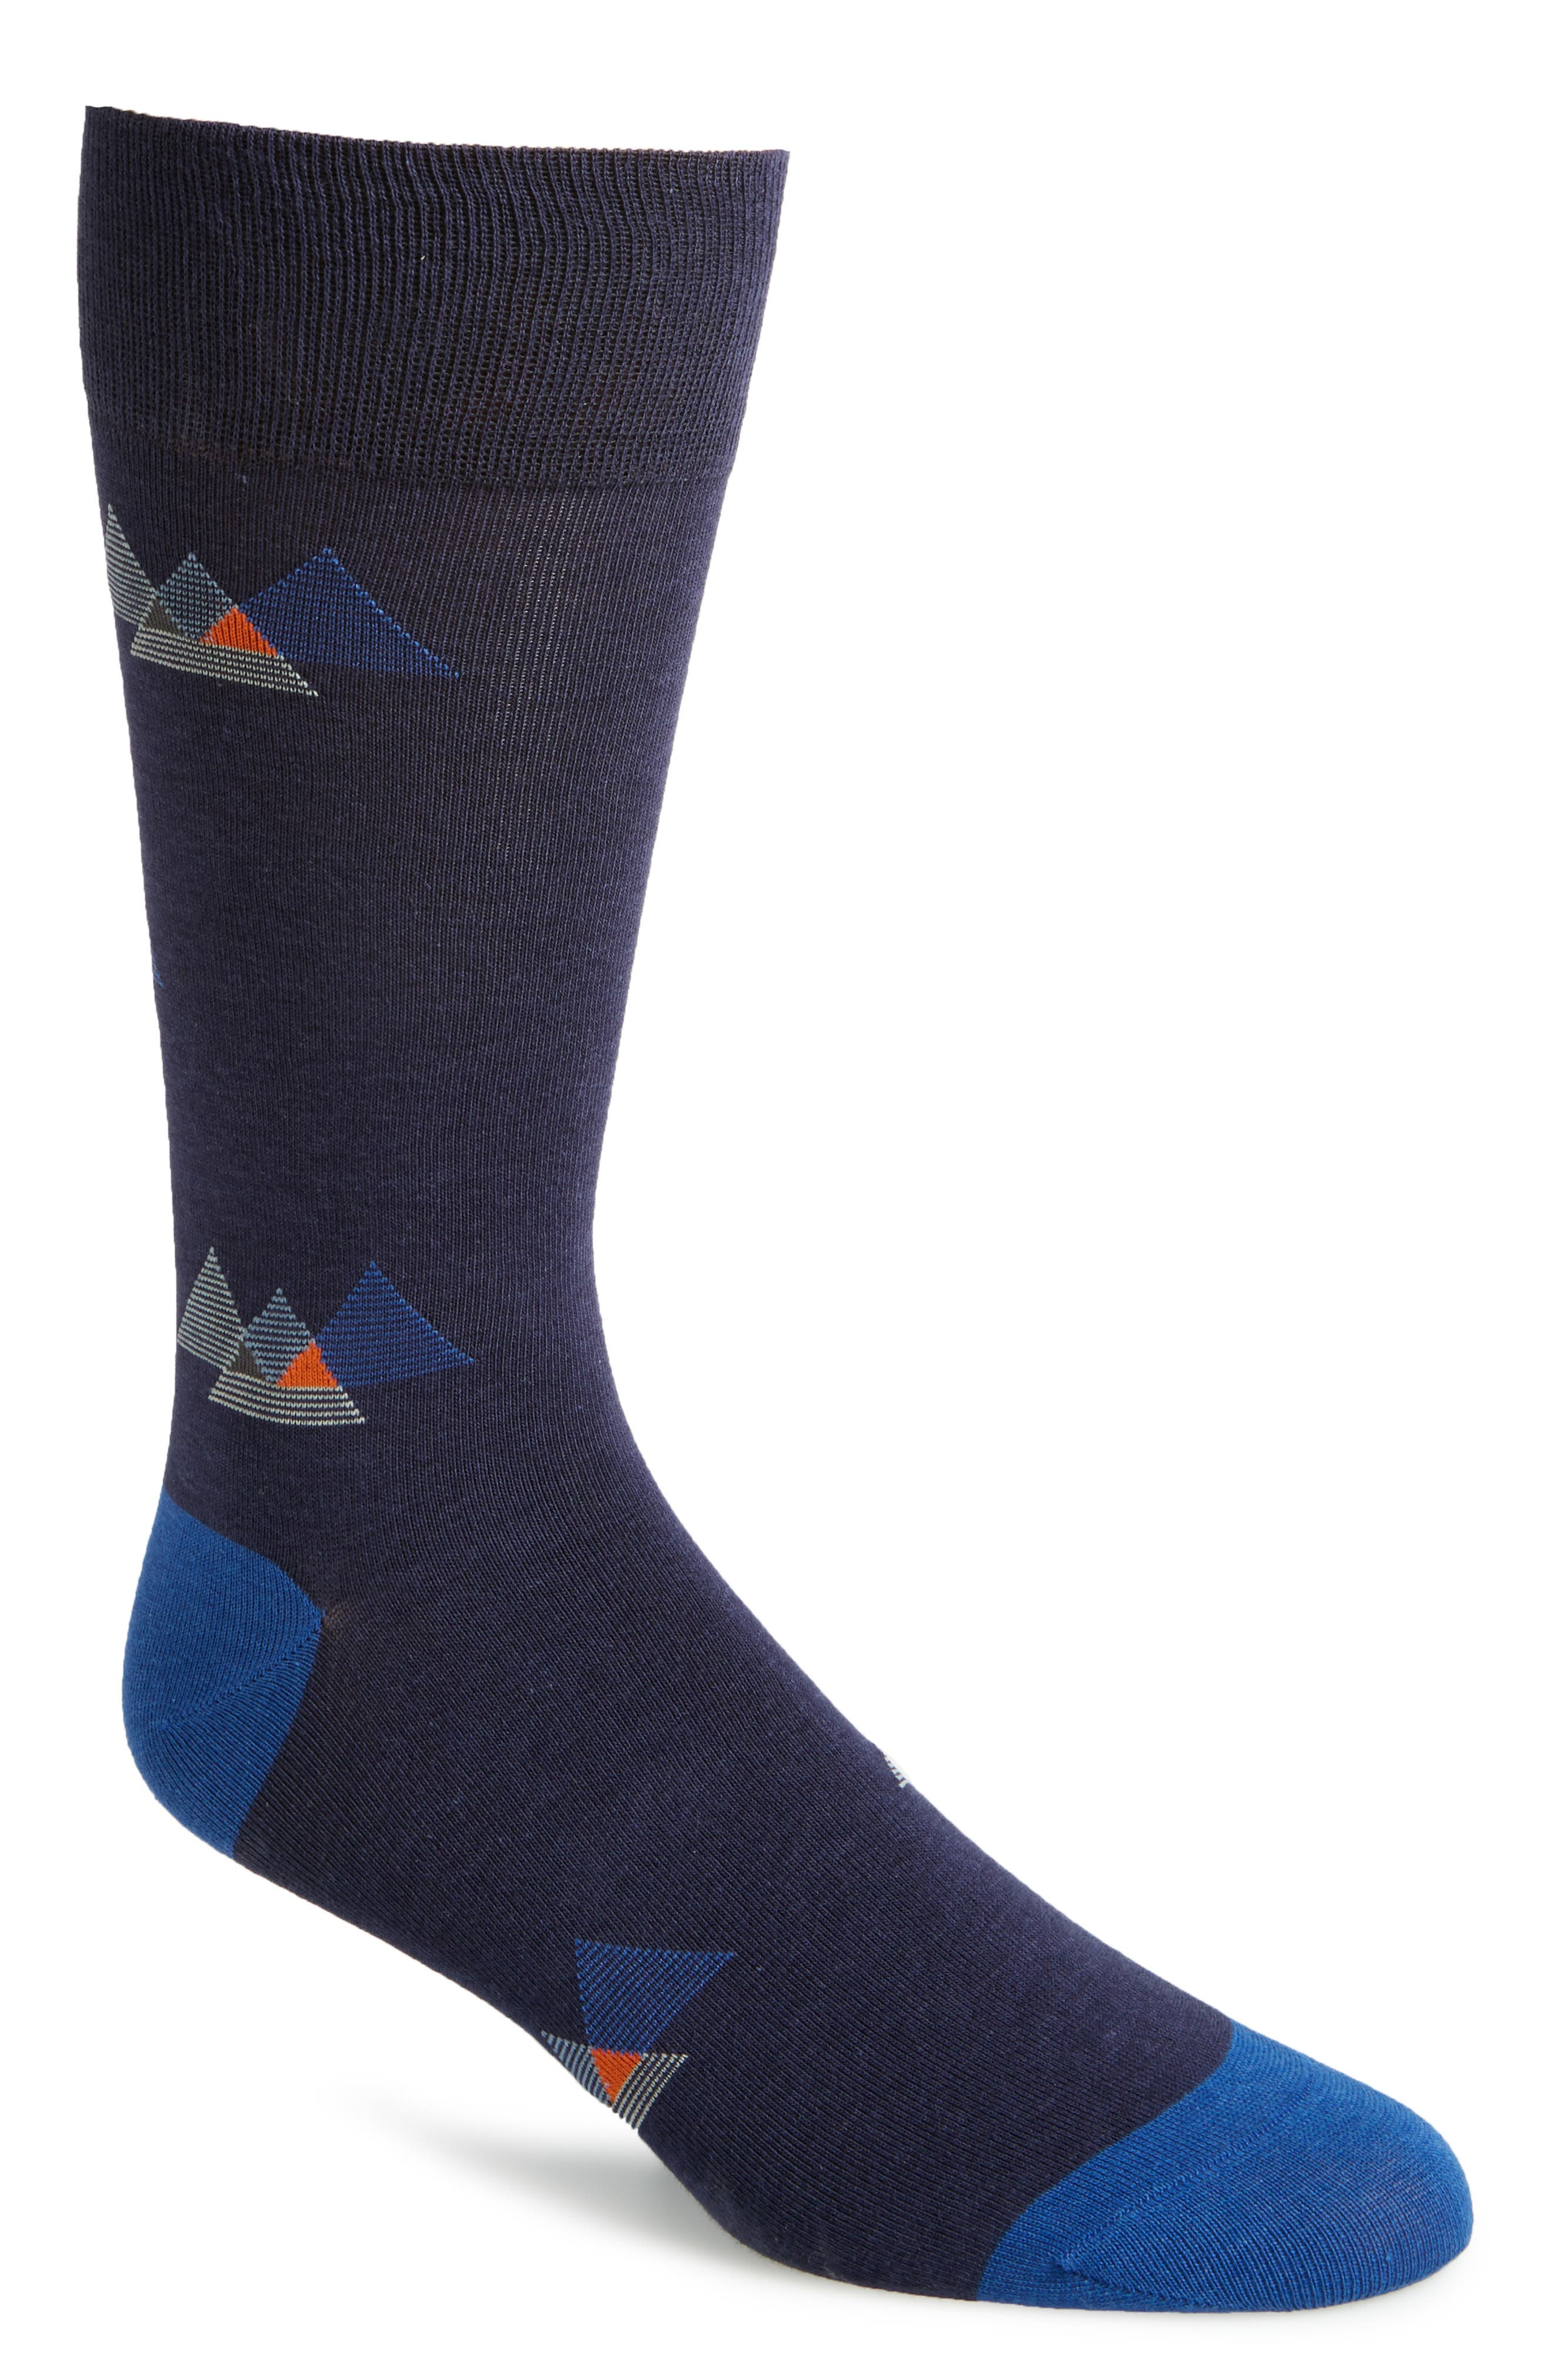 Main Image - Cole Haan Triangles Socks (3 for $30)